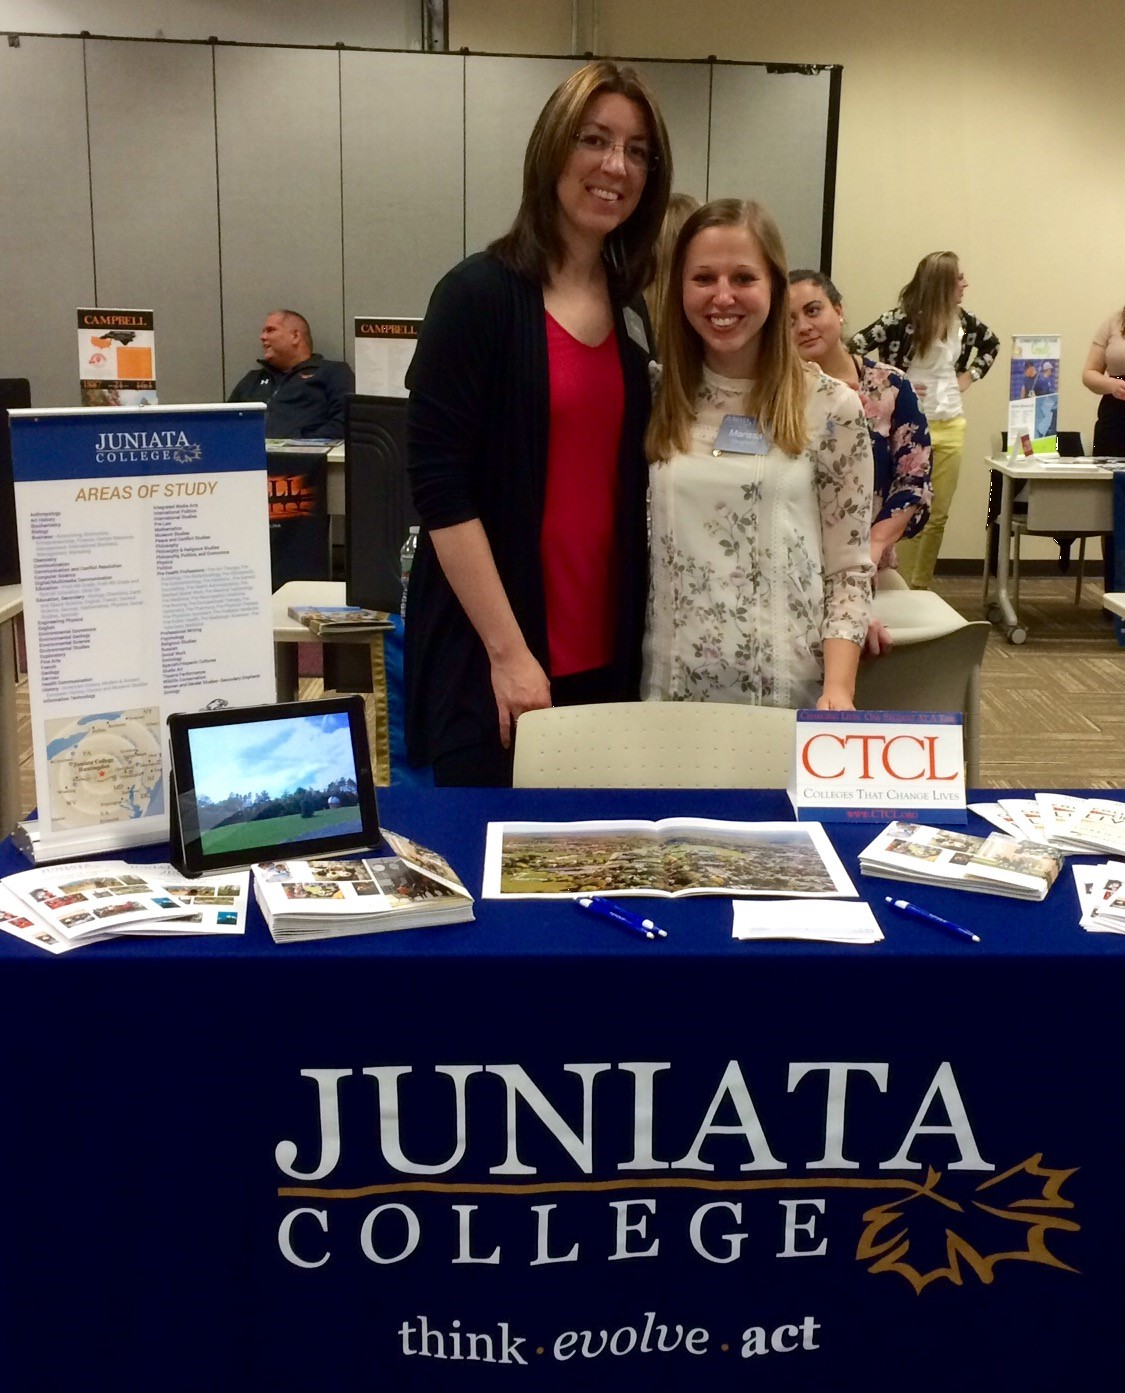 Karen Beck and Marissa Dougherty College Fair